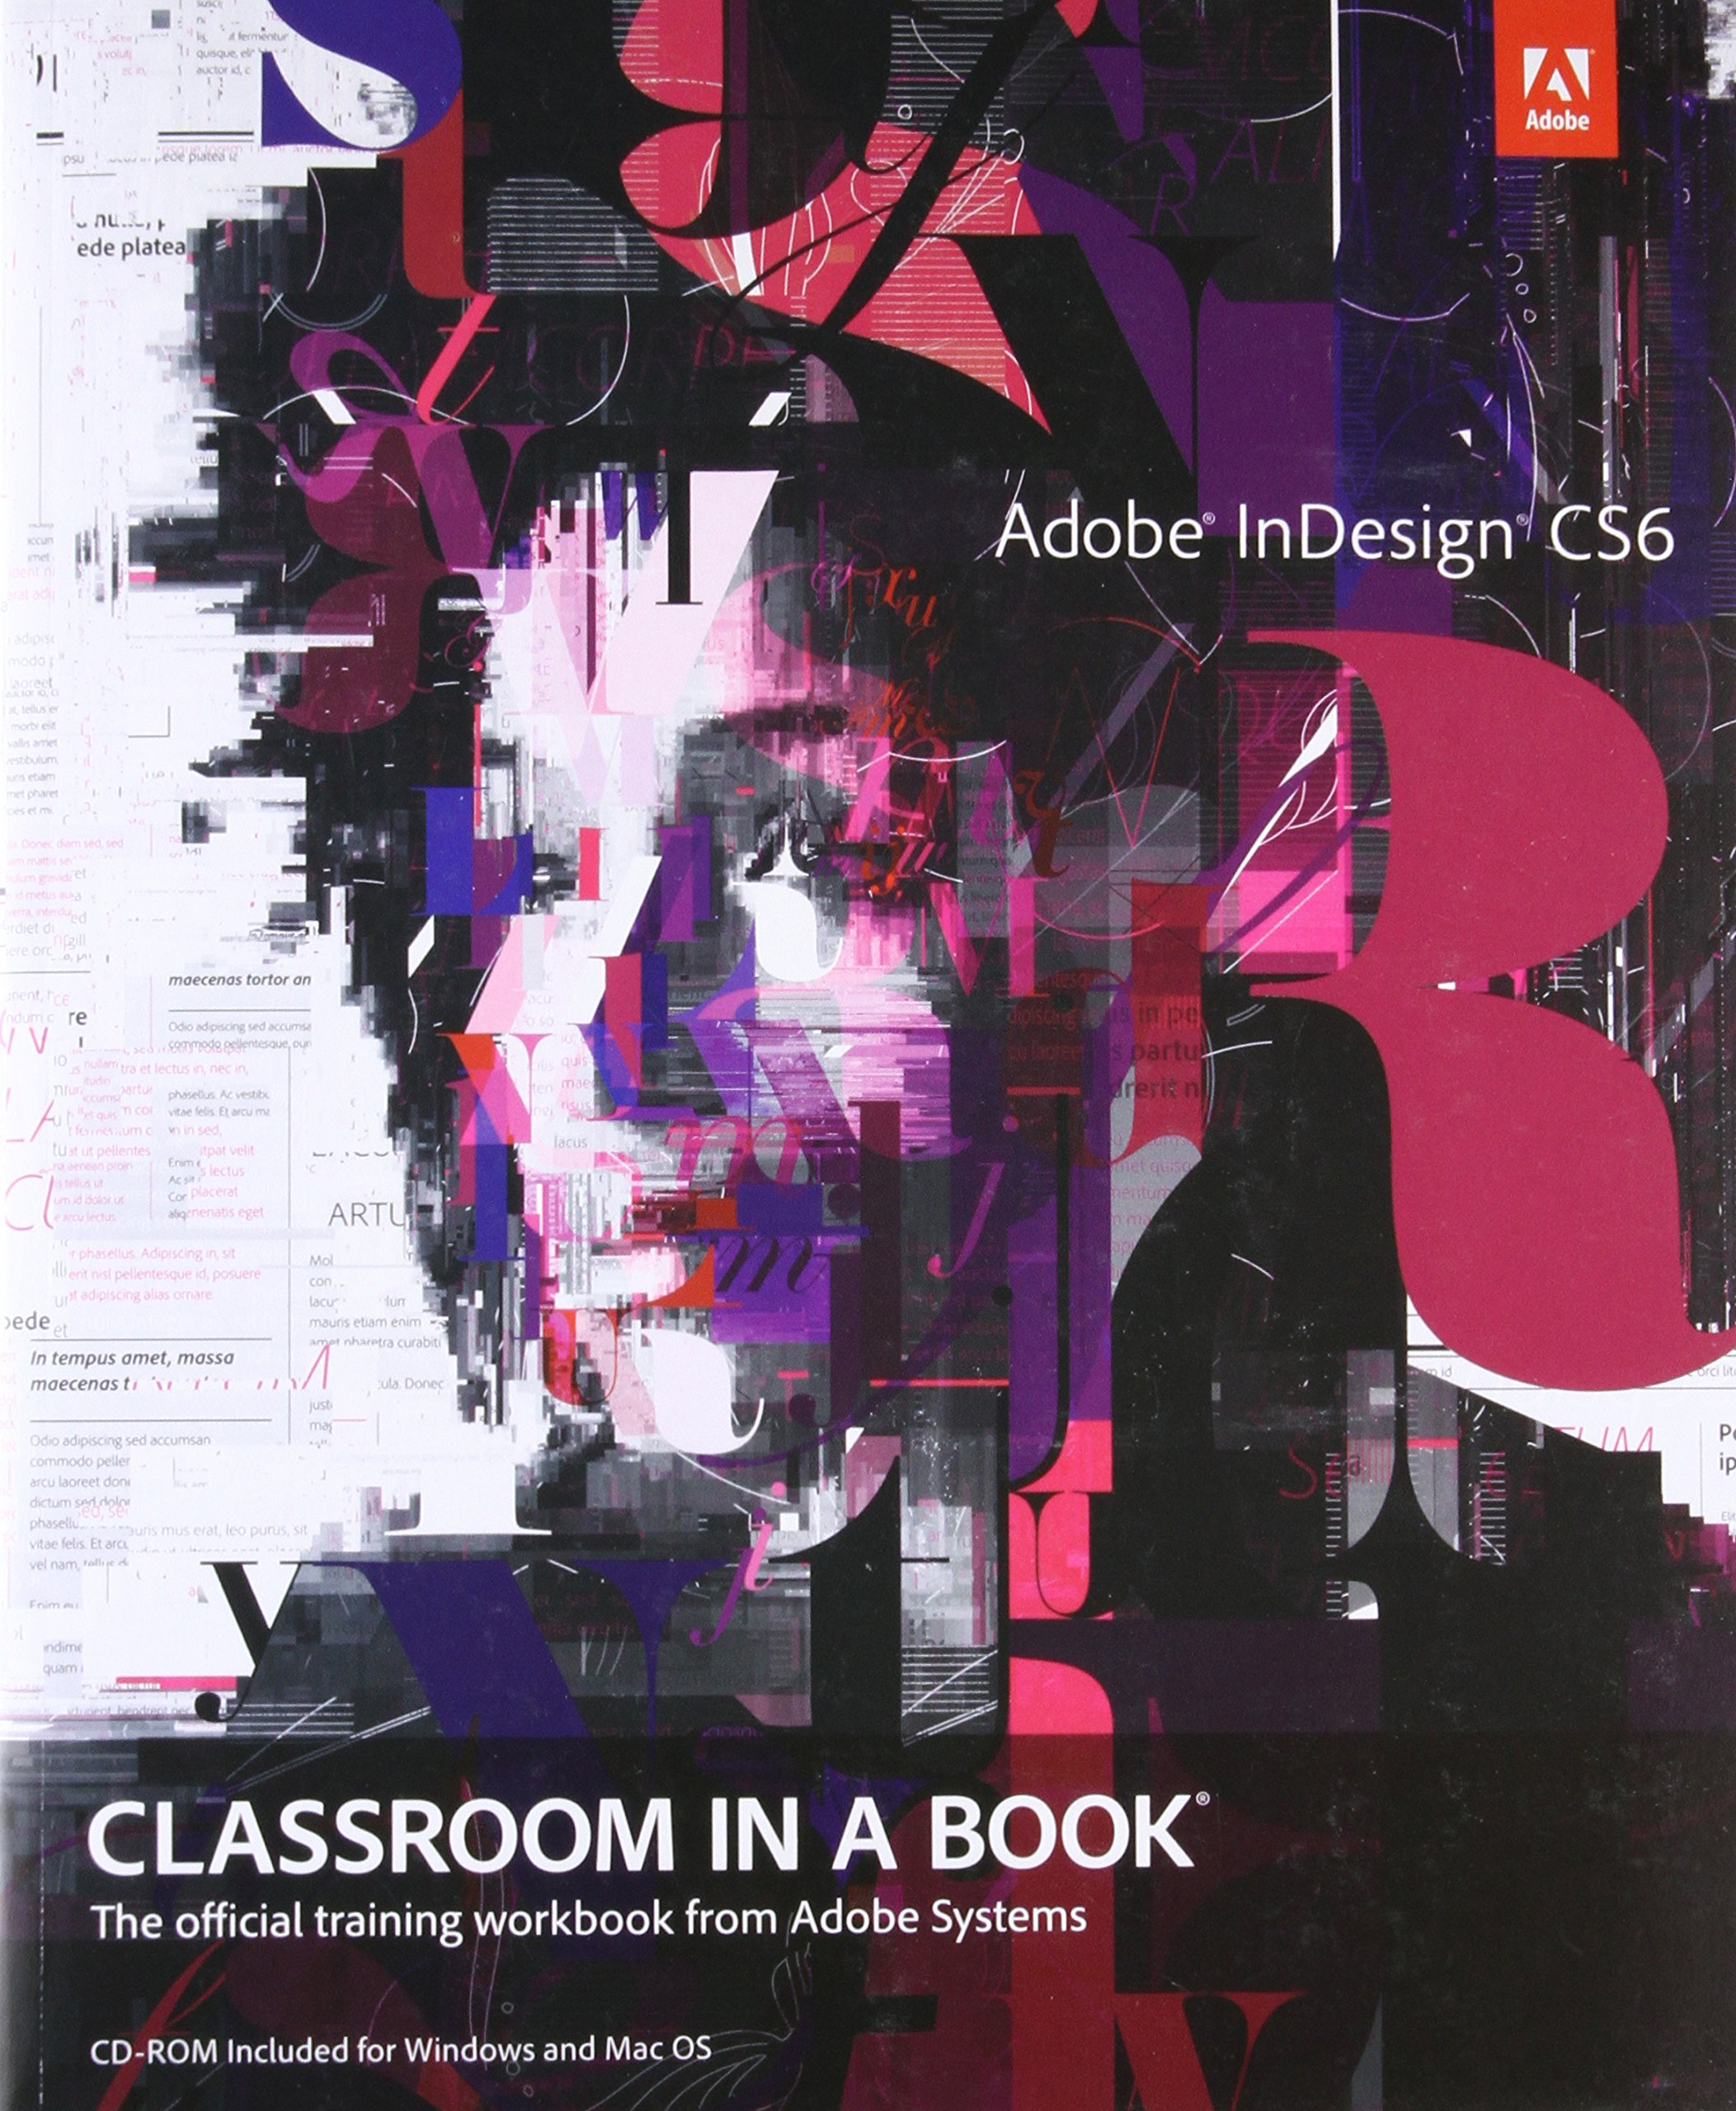 Buy Adobe InDesign CS6 Classroom in a Book Book Online at Low Prices in  India | Adobe InDesign CS6 Classroom in a Book Reviews & Ratings - Amazon.in